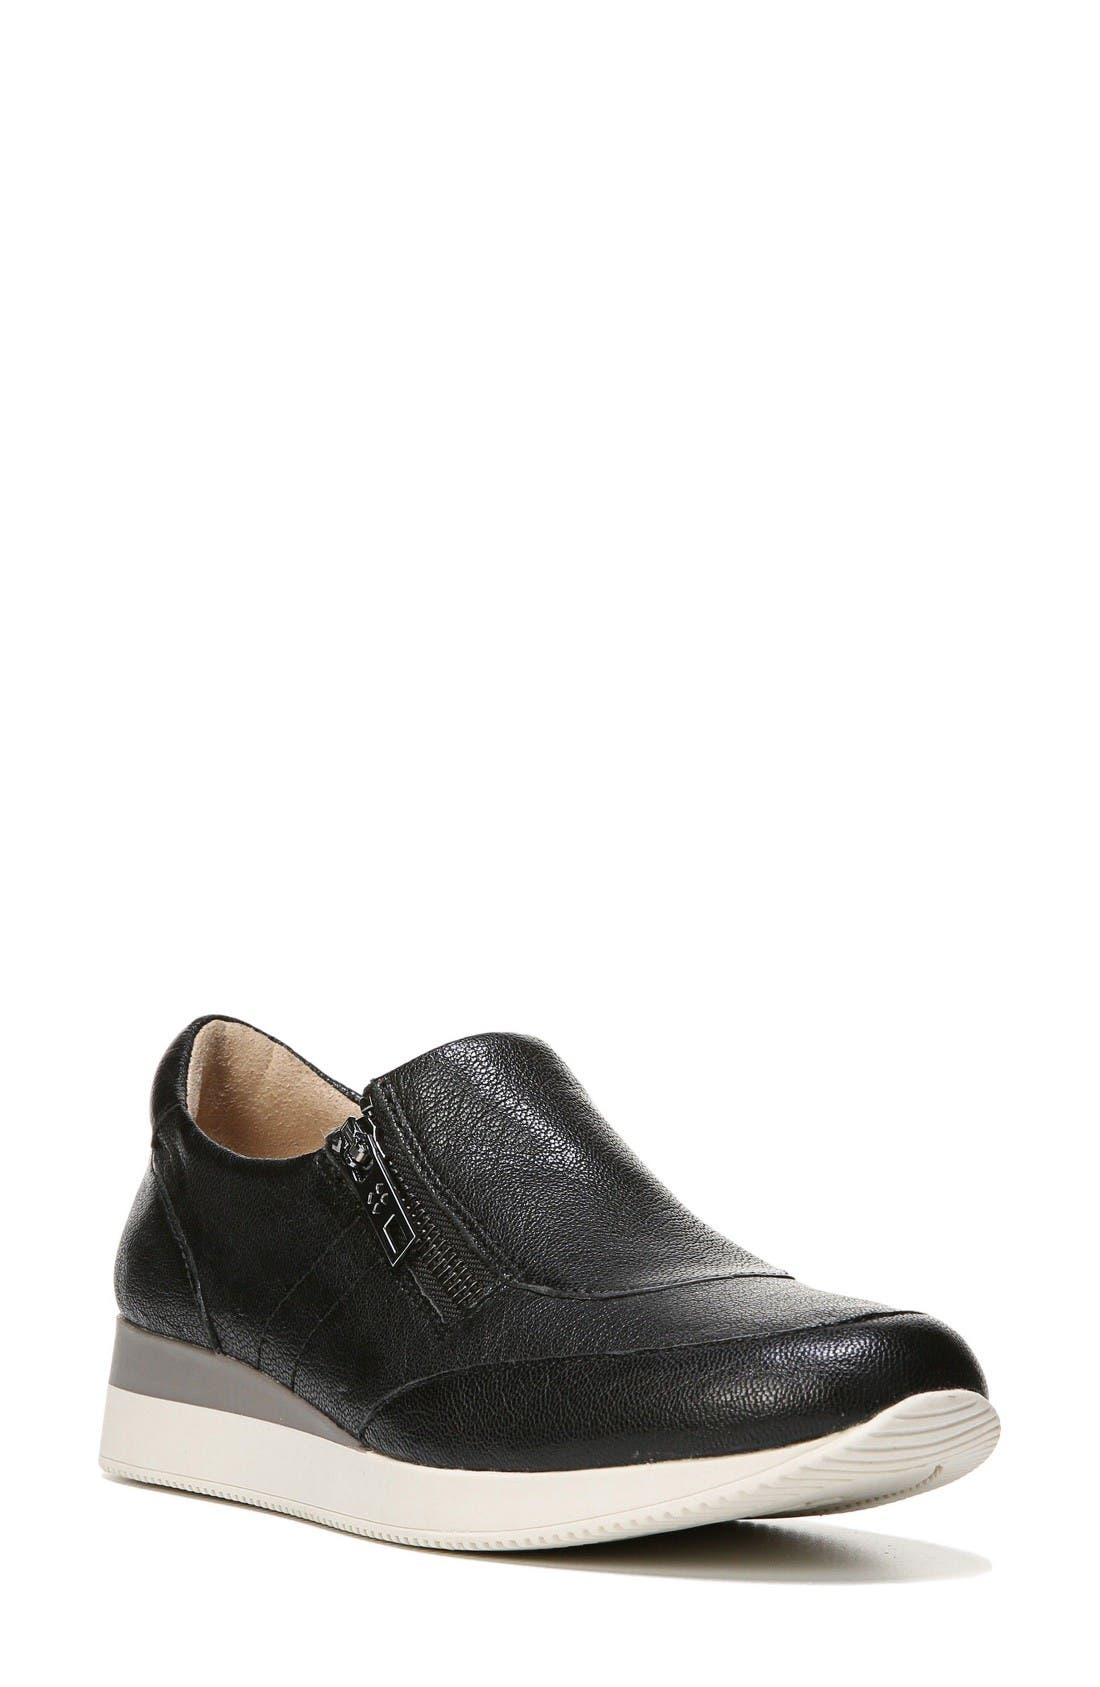 Jetty Sneaker,                             Main thumbnail 1, color,                             Black Leather